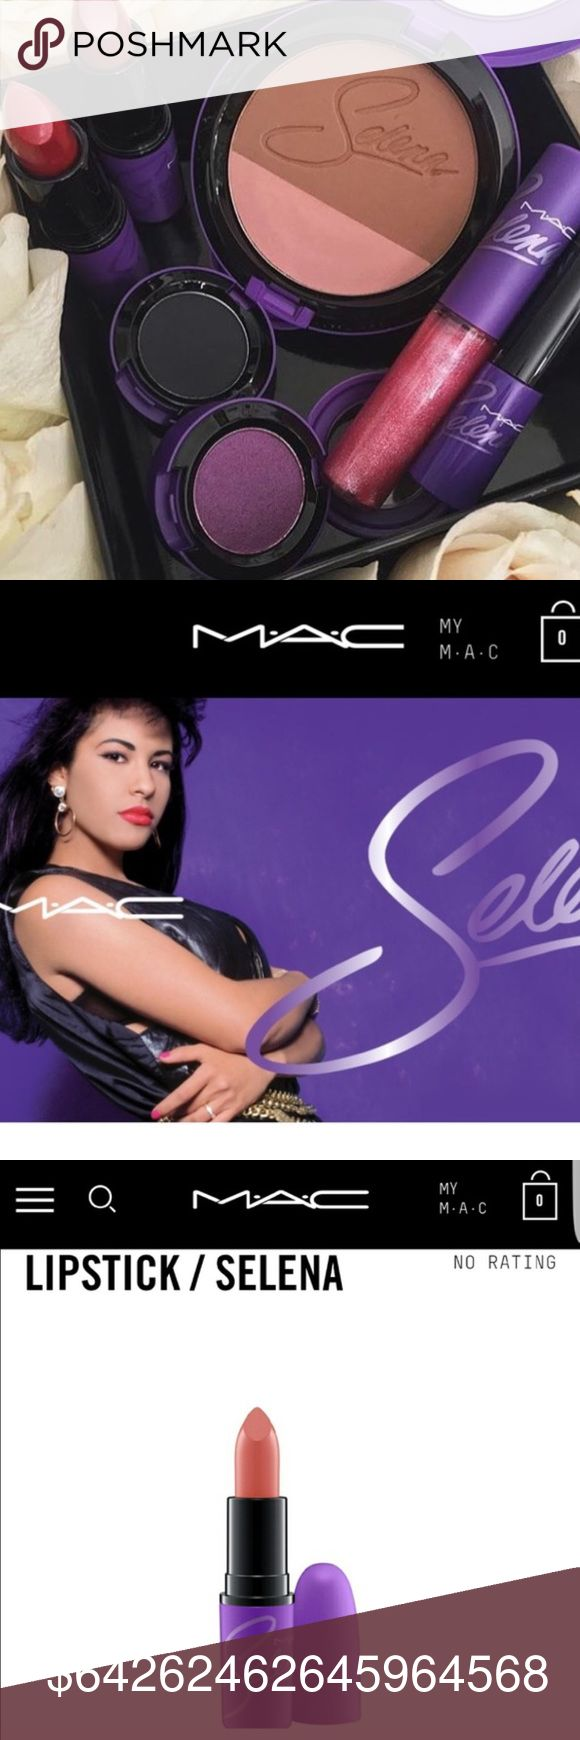 😍COMING SOON!!! Selena Amor Probido lipstick I will have Amor Probido lipstick and missing my baby eyeshadow for sale once I get the order in!!! Like this post for now and I'll update it once product comes in!!! MAC Cosmetics Makeup